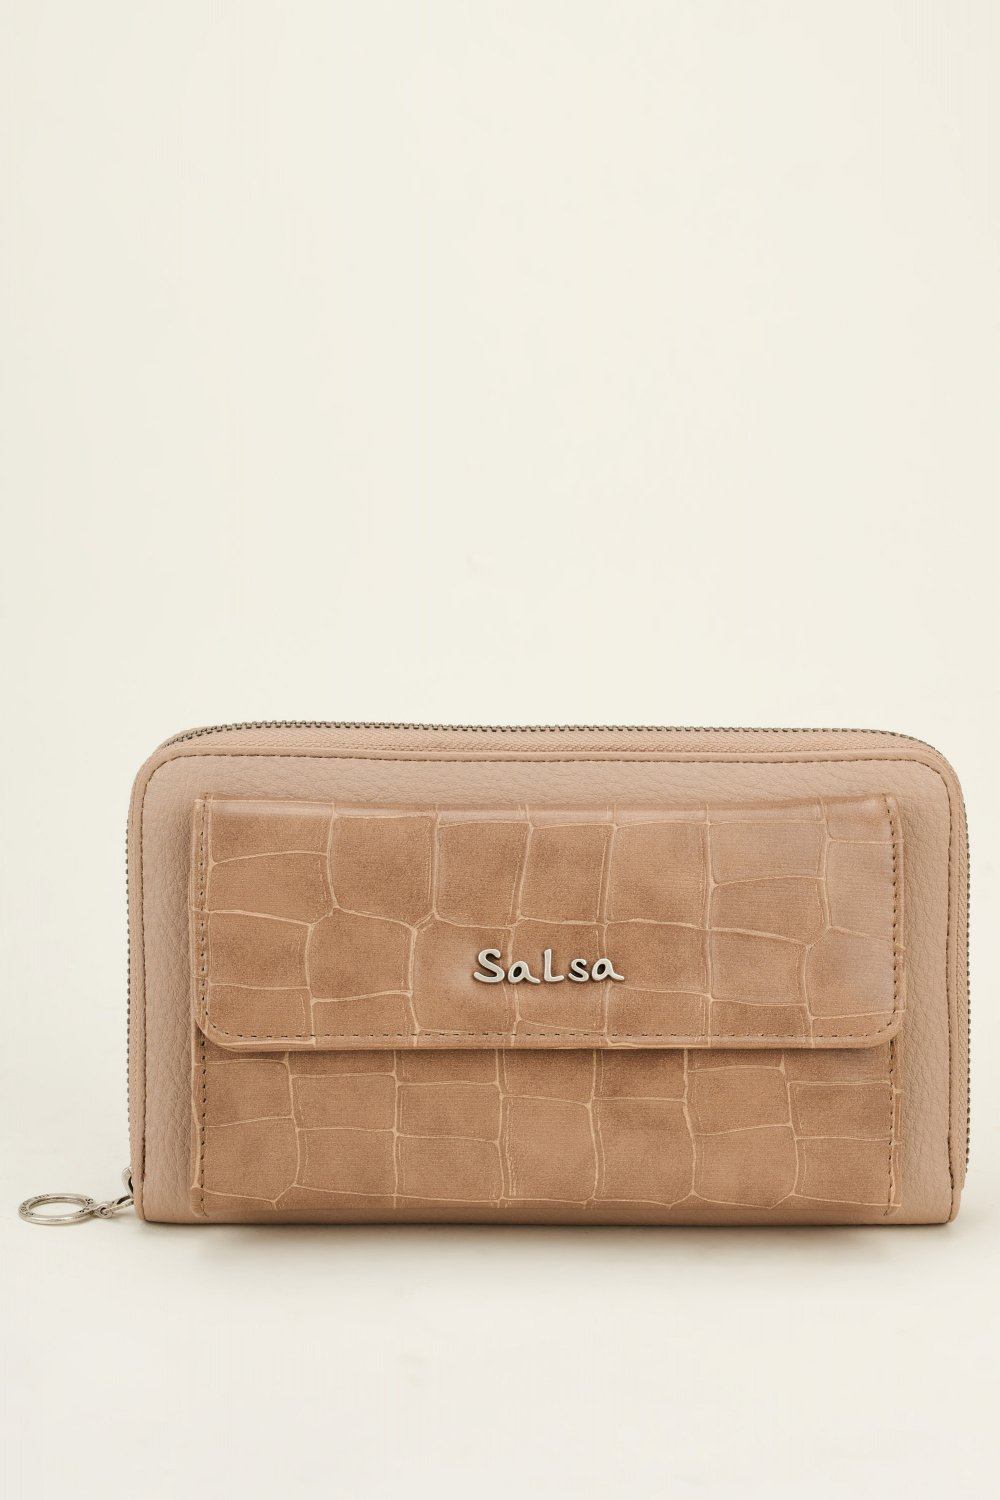 Purse with snakeskin detail - Salsa